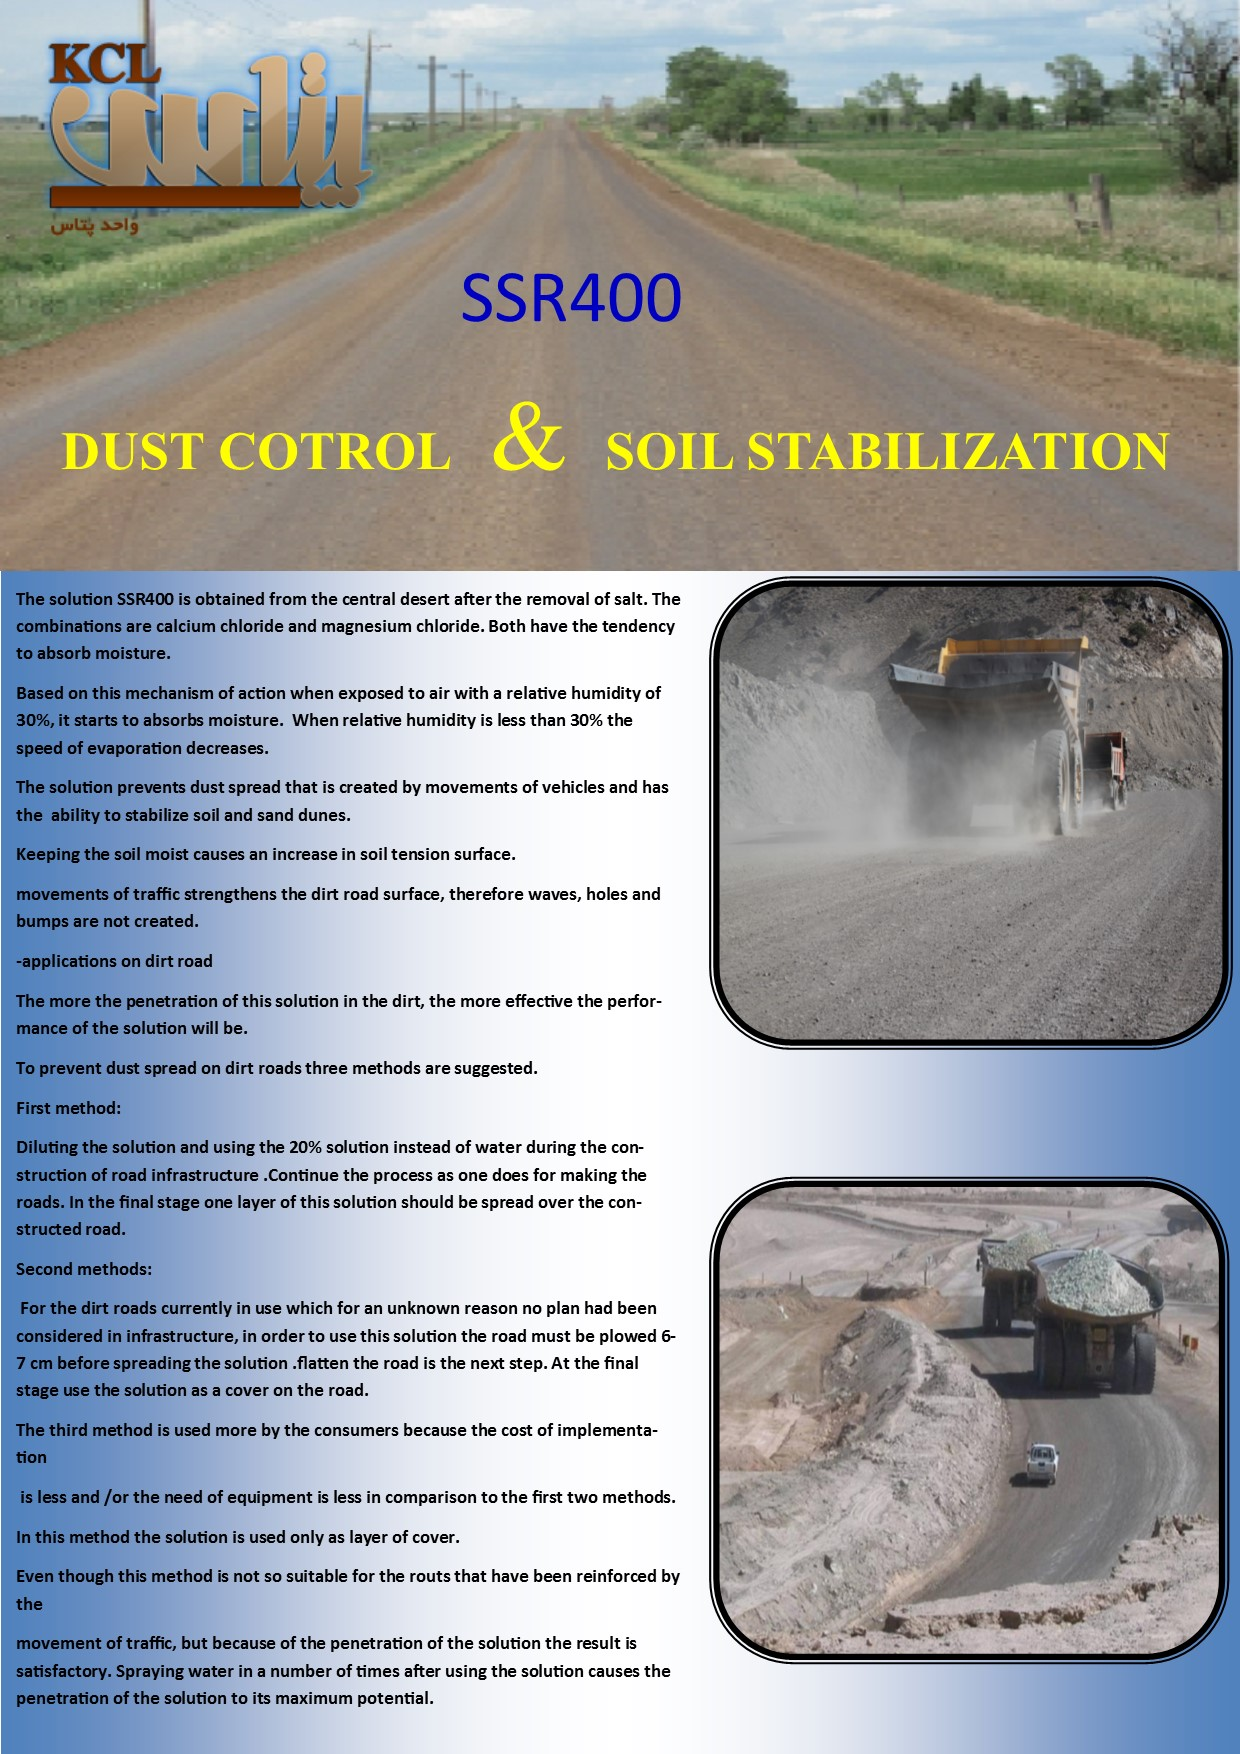 DUST COTROL